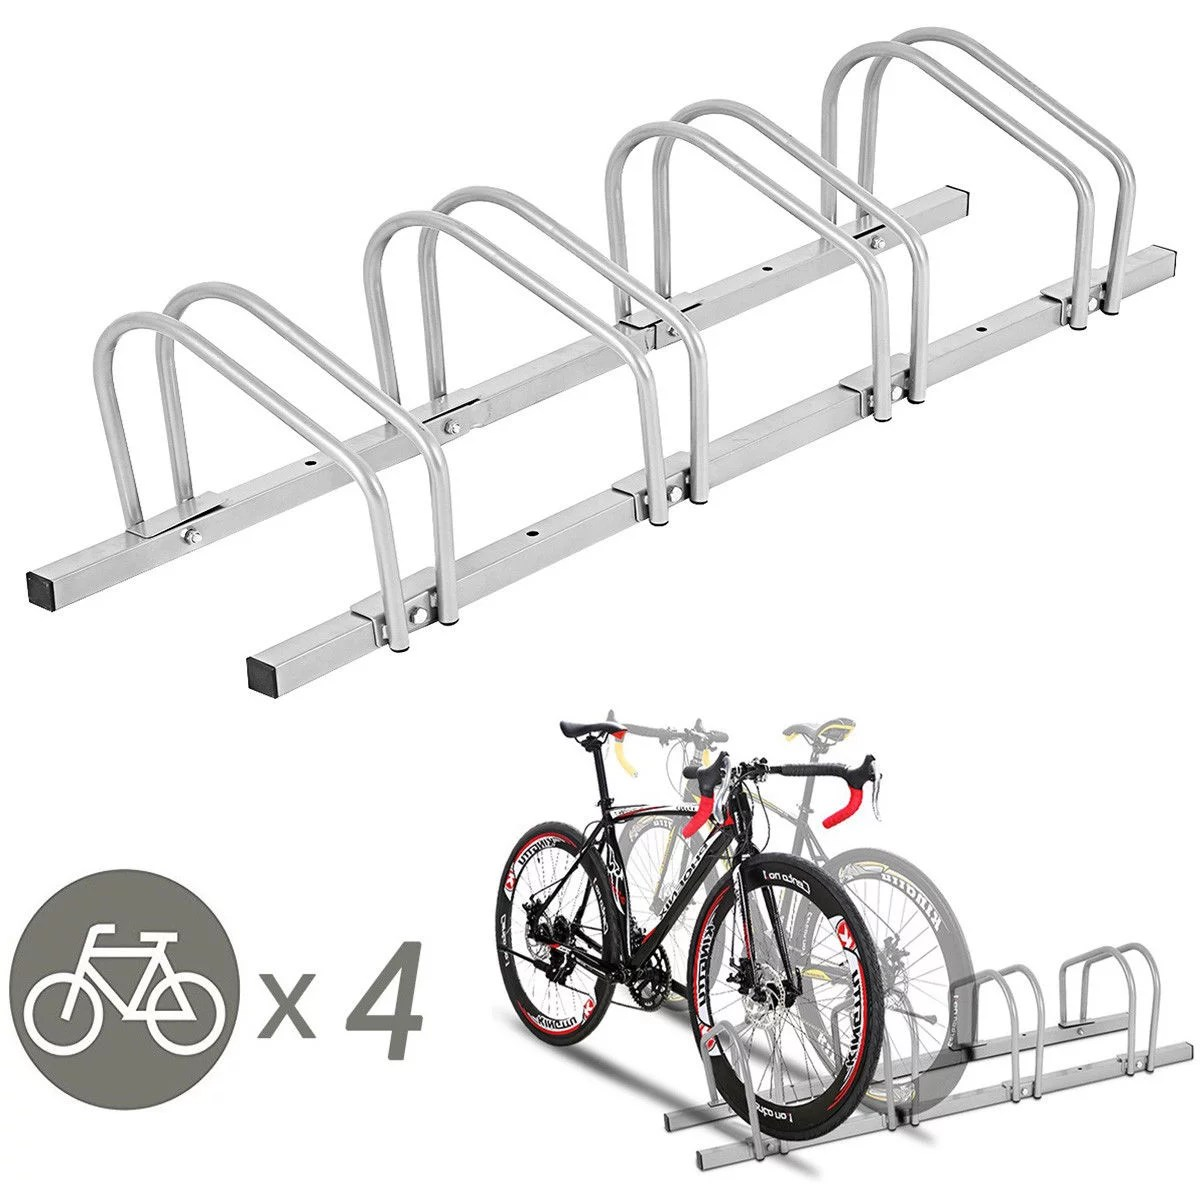 Parking Garage Bike Rack Gymax 4 Bike Bicycle Stand Parking Garage Storage Cycling Rack Silver